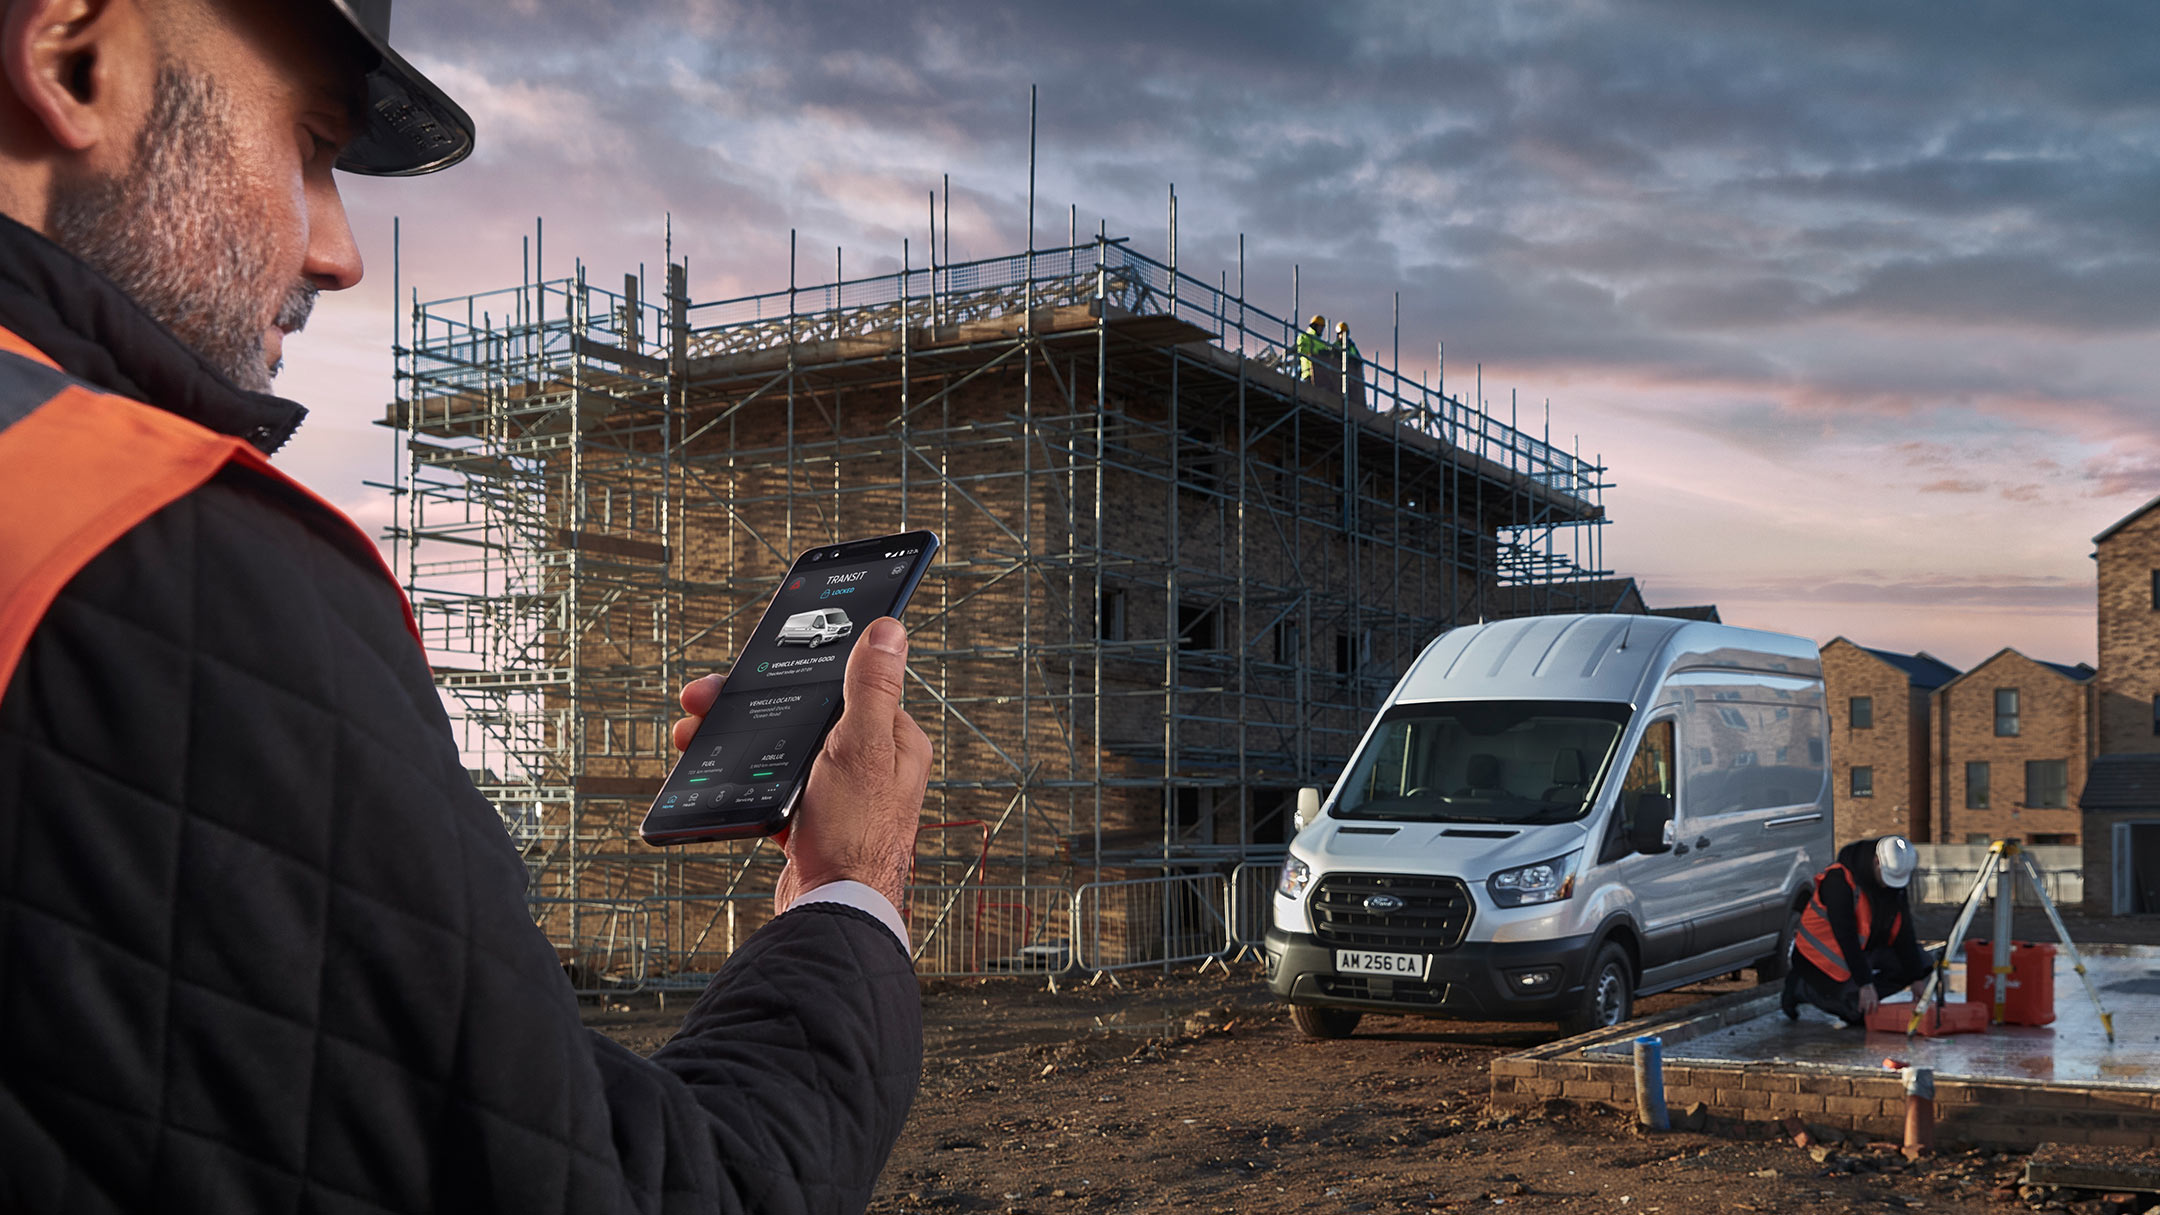 Ford Telematics being shown by man at building site